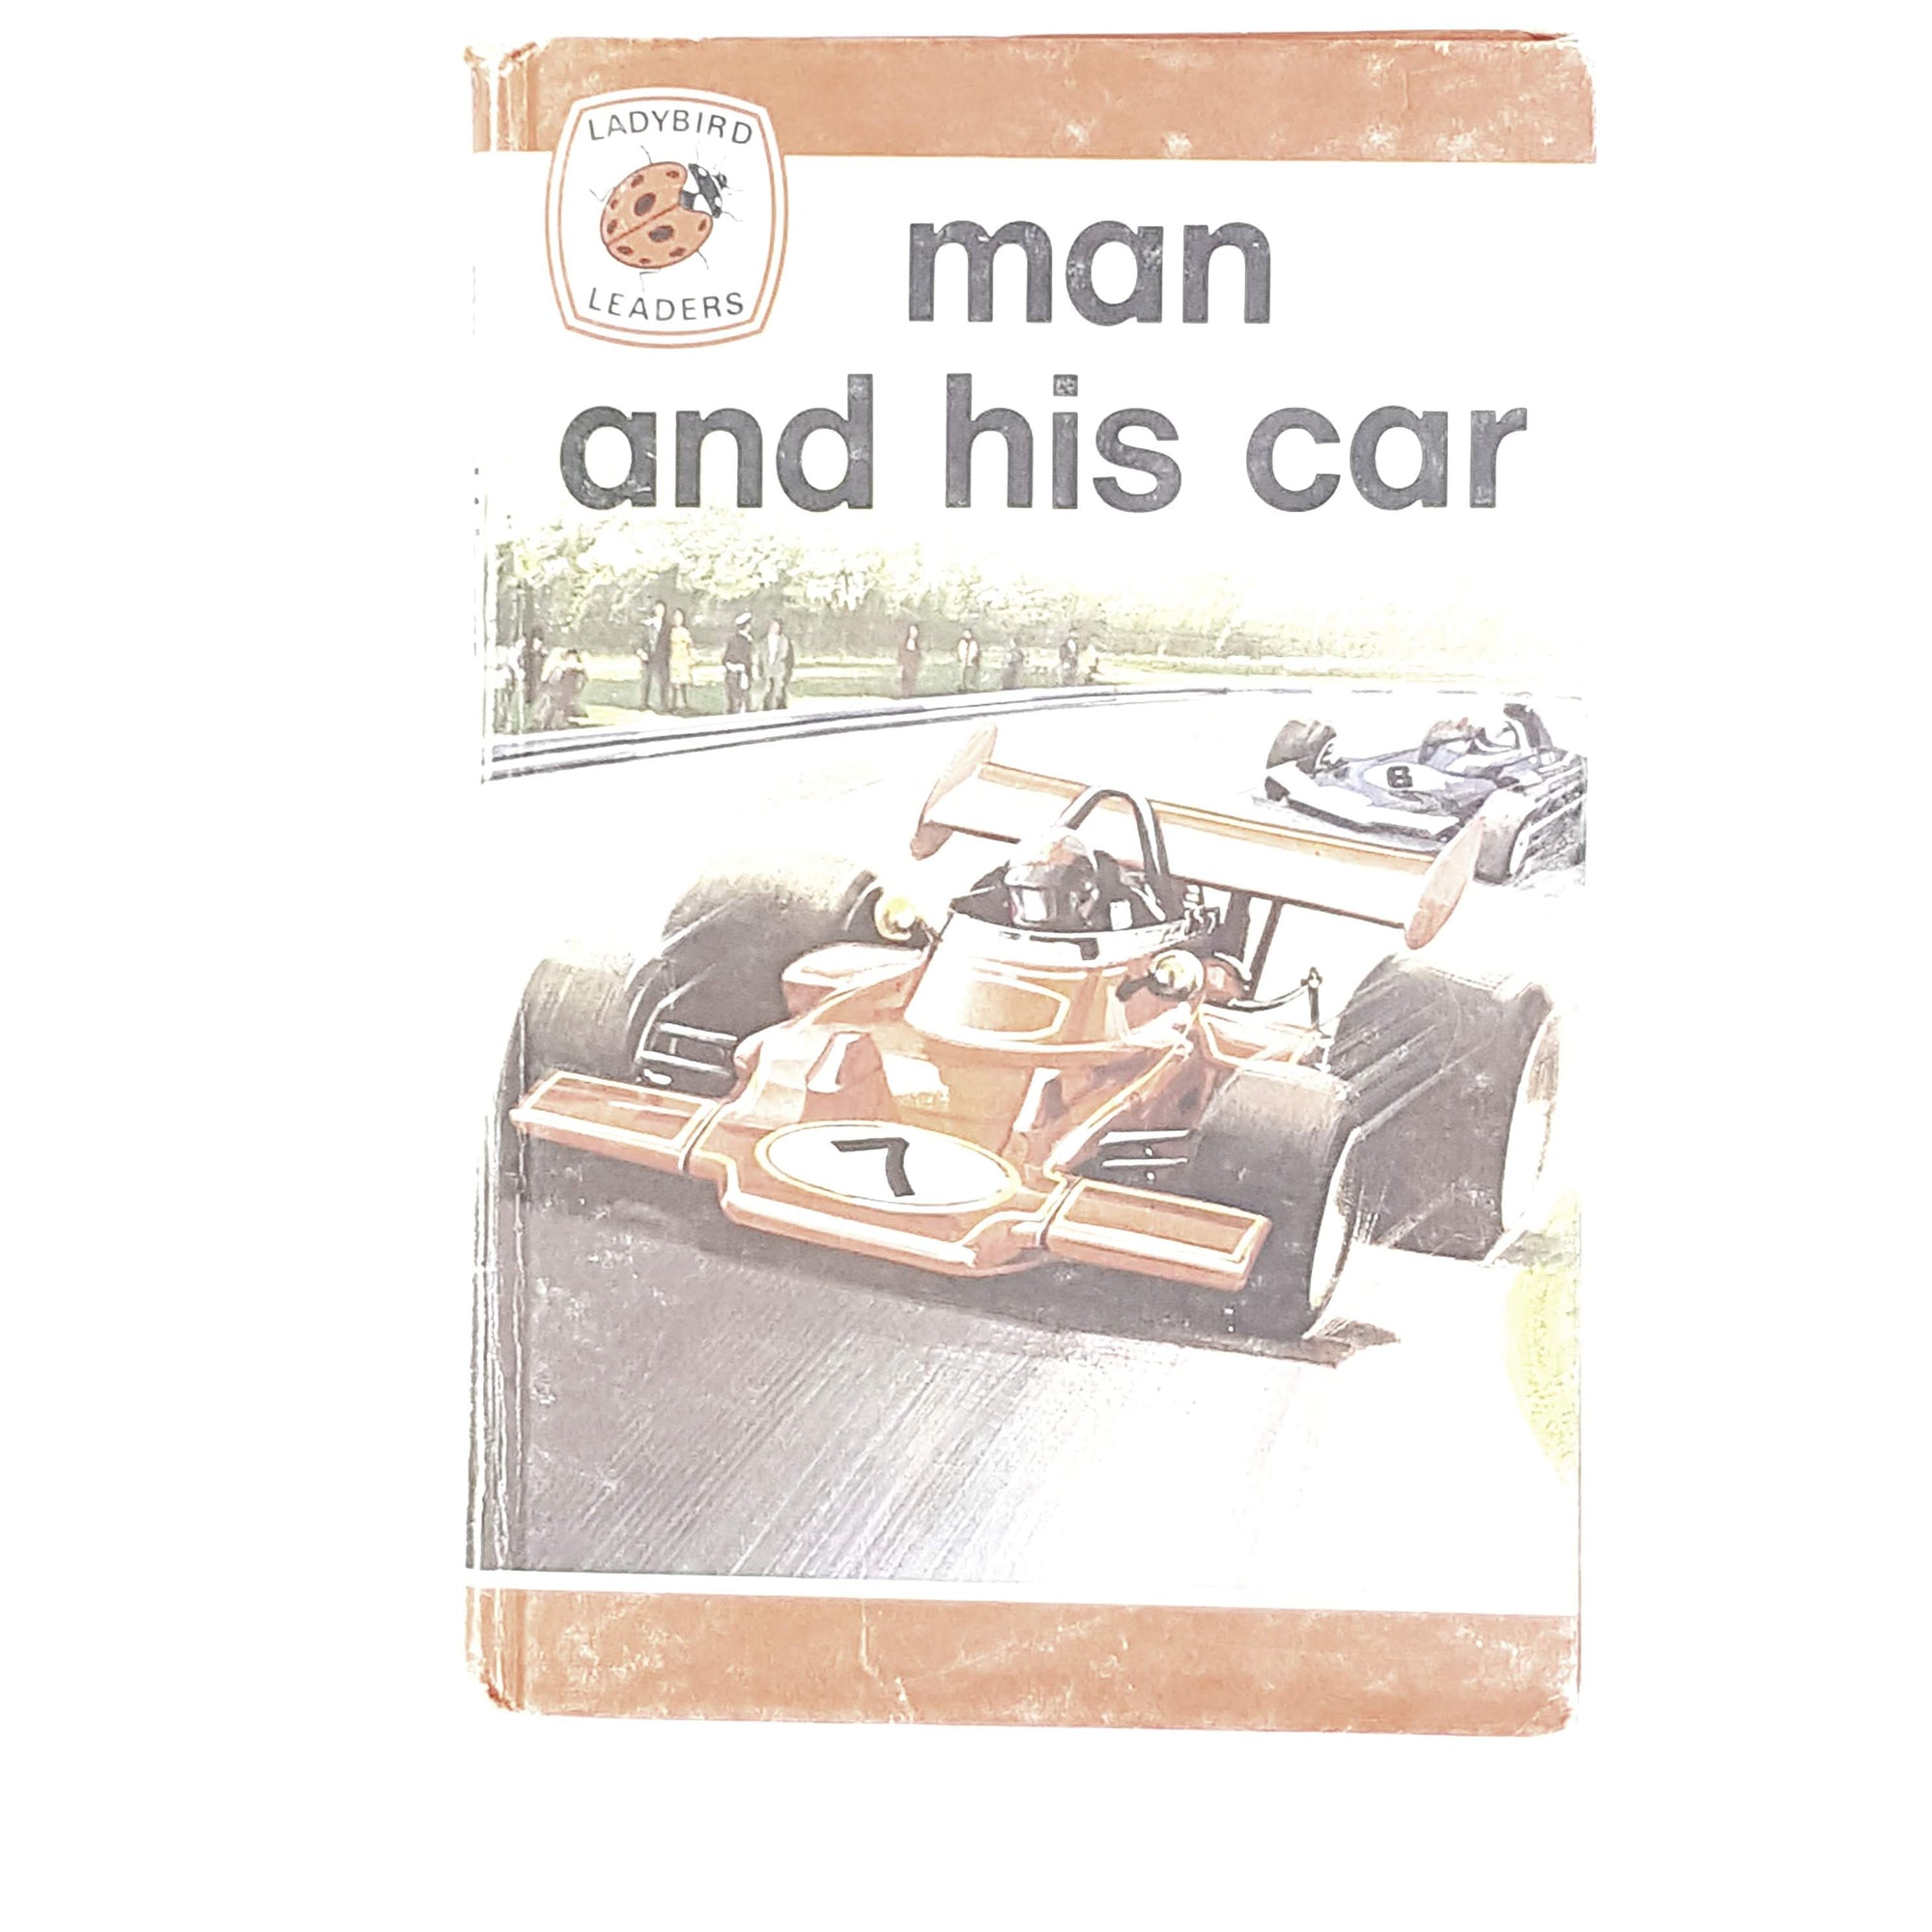 ladybird-leaders-man-and-his-car-1974-country-house-library